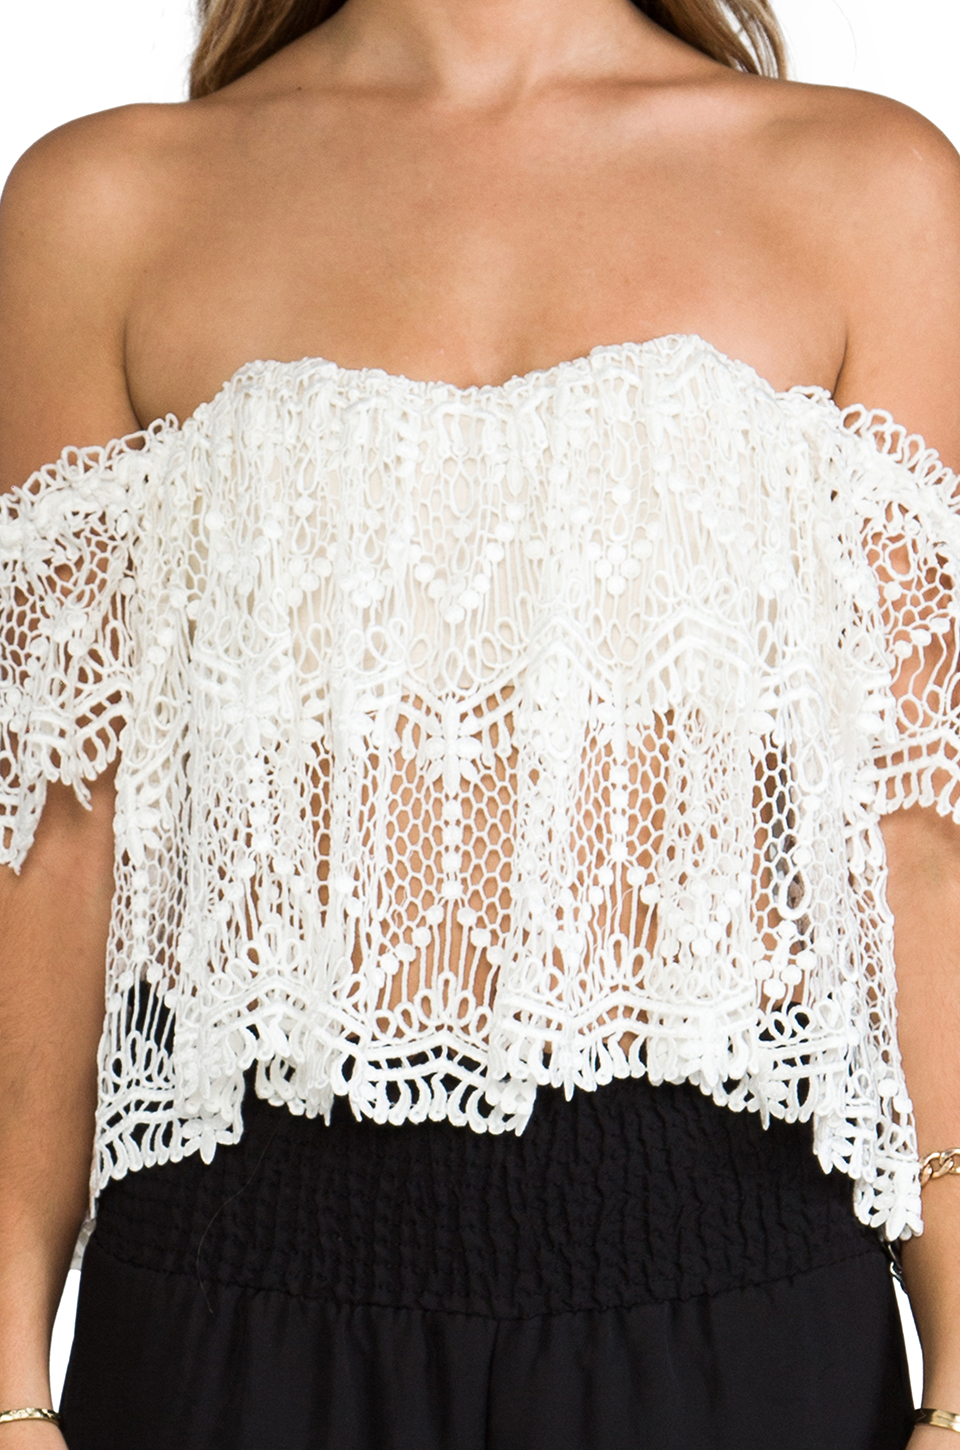 45a7354aea3 Lyst - Stone Cold Fox Moroccan Holy Tube Top in Ivory in White